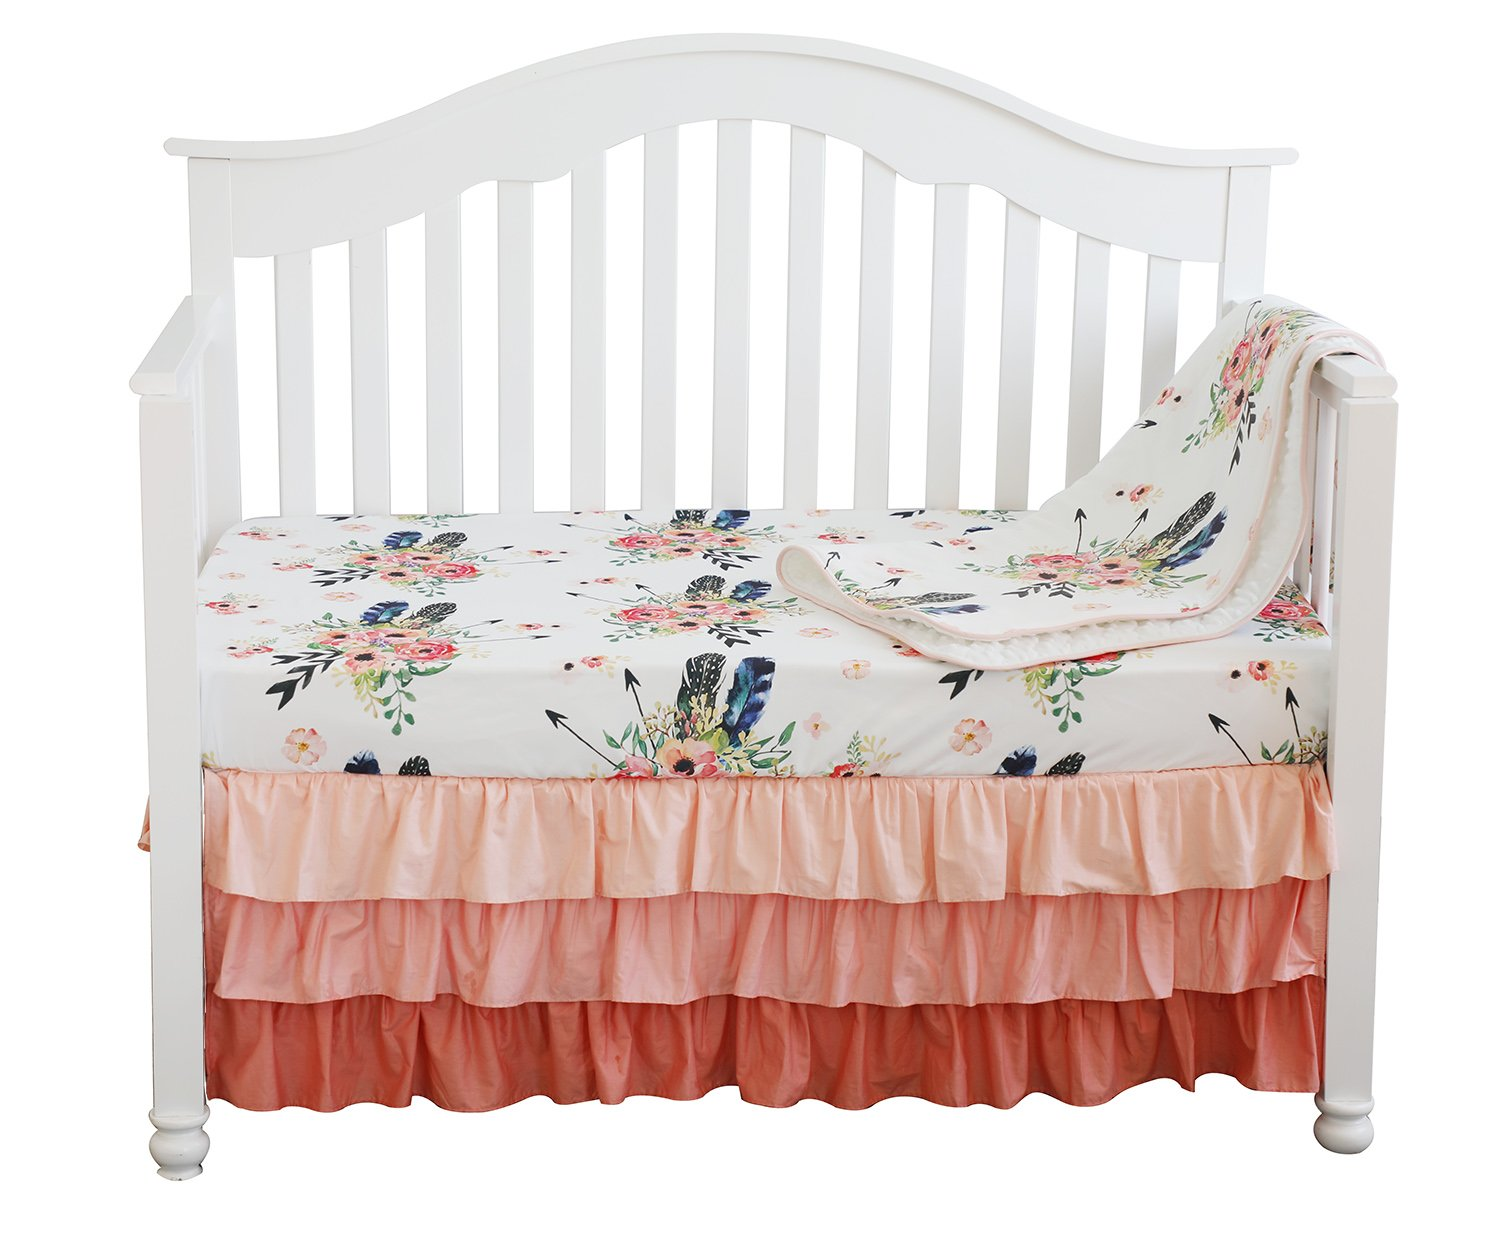 Floral n Feathers Navy Pink n Mint Double Sided Minky Blanket or Quilt Nursery Crib Toddler Baby Child Teen Adult *Made to Order*